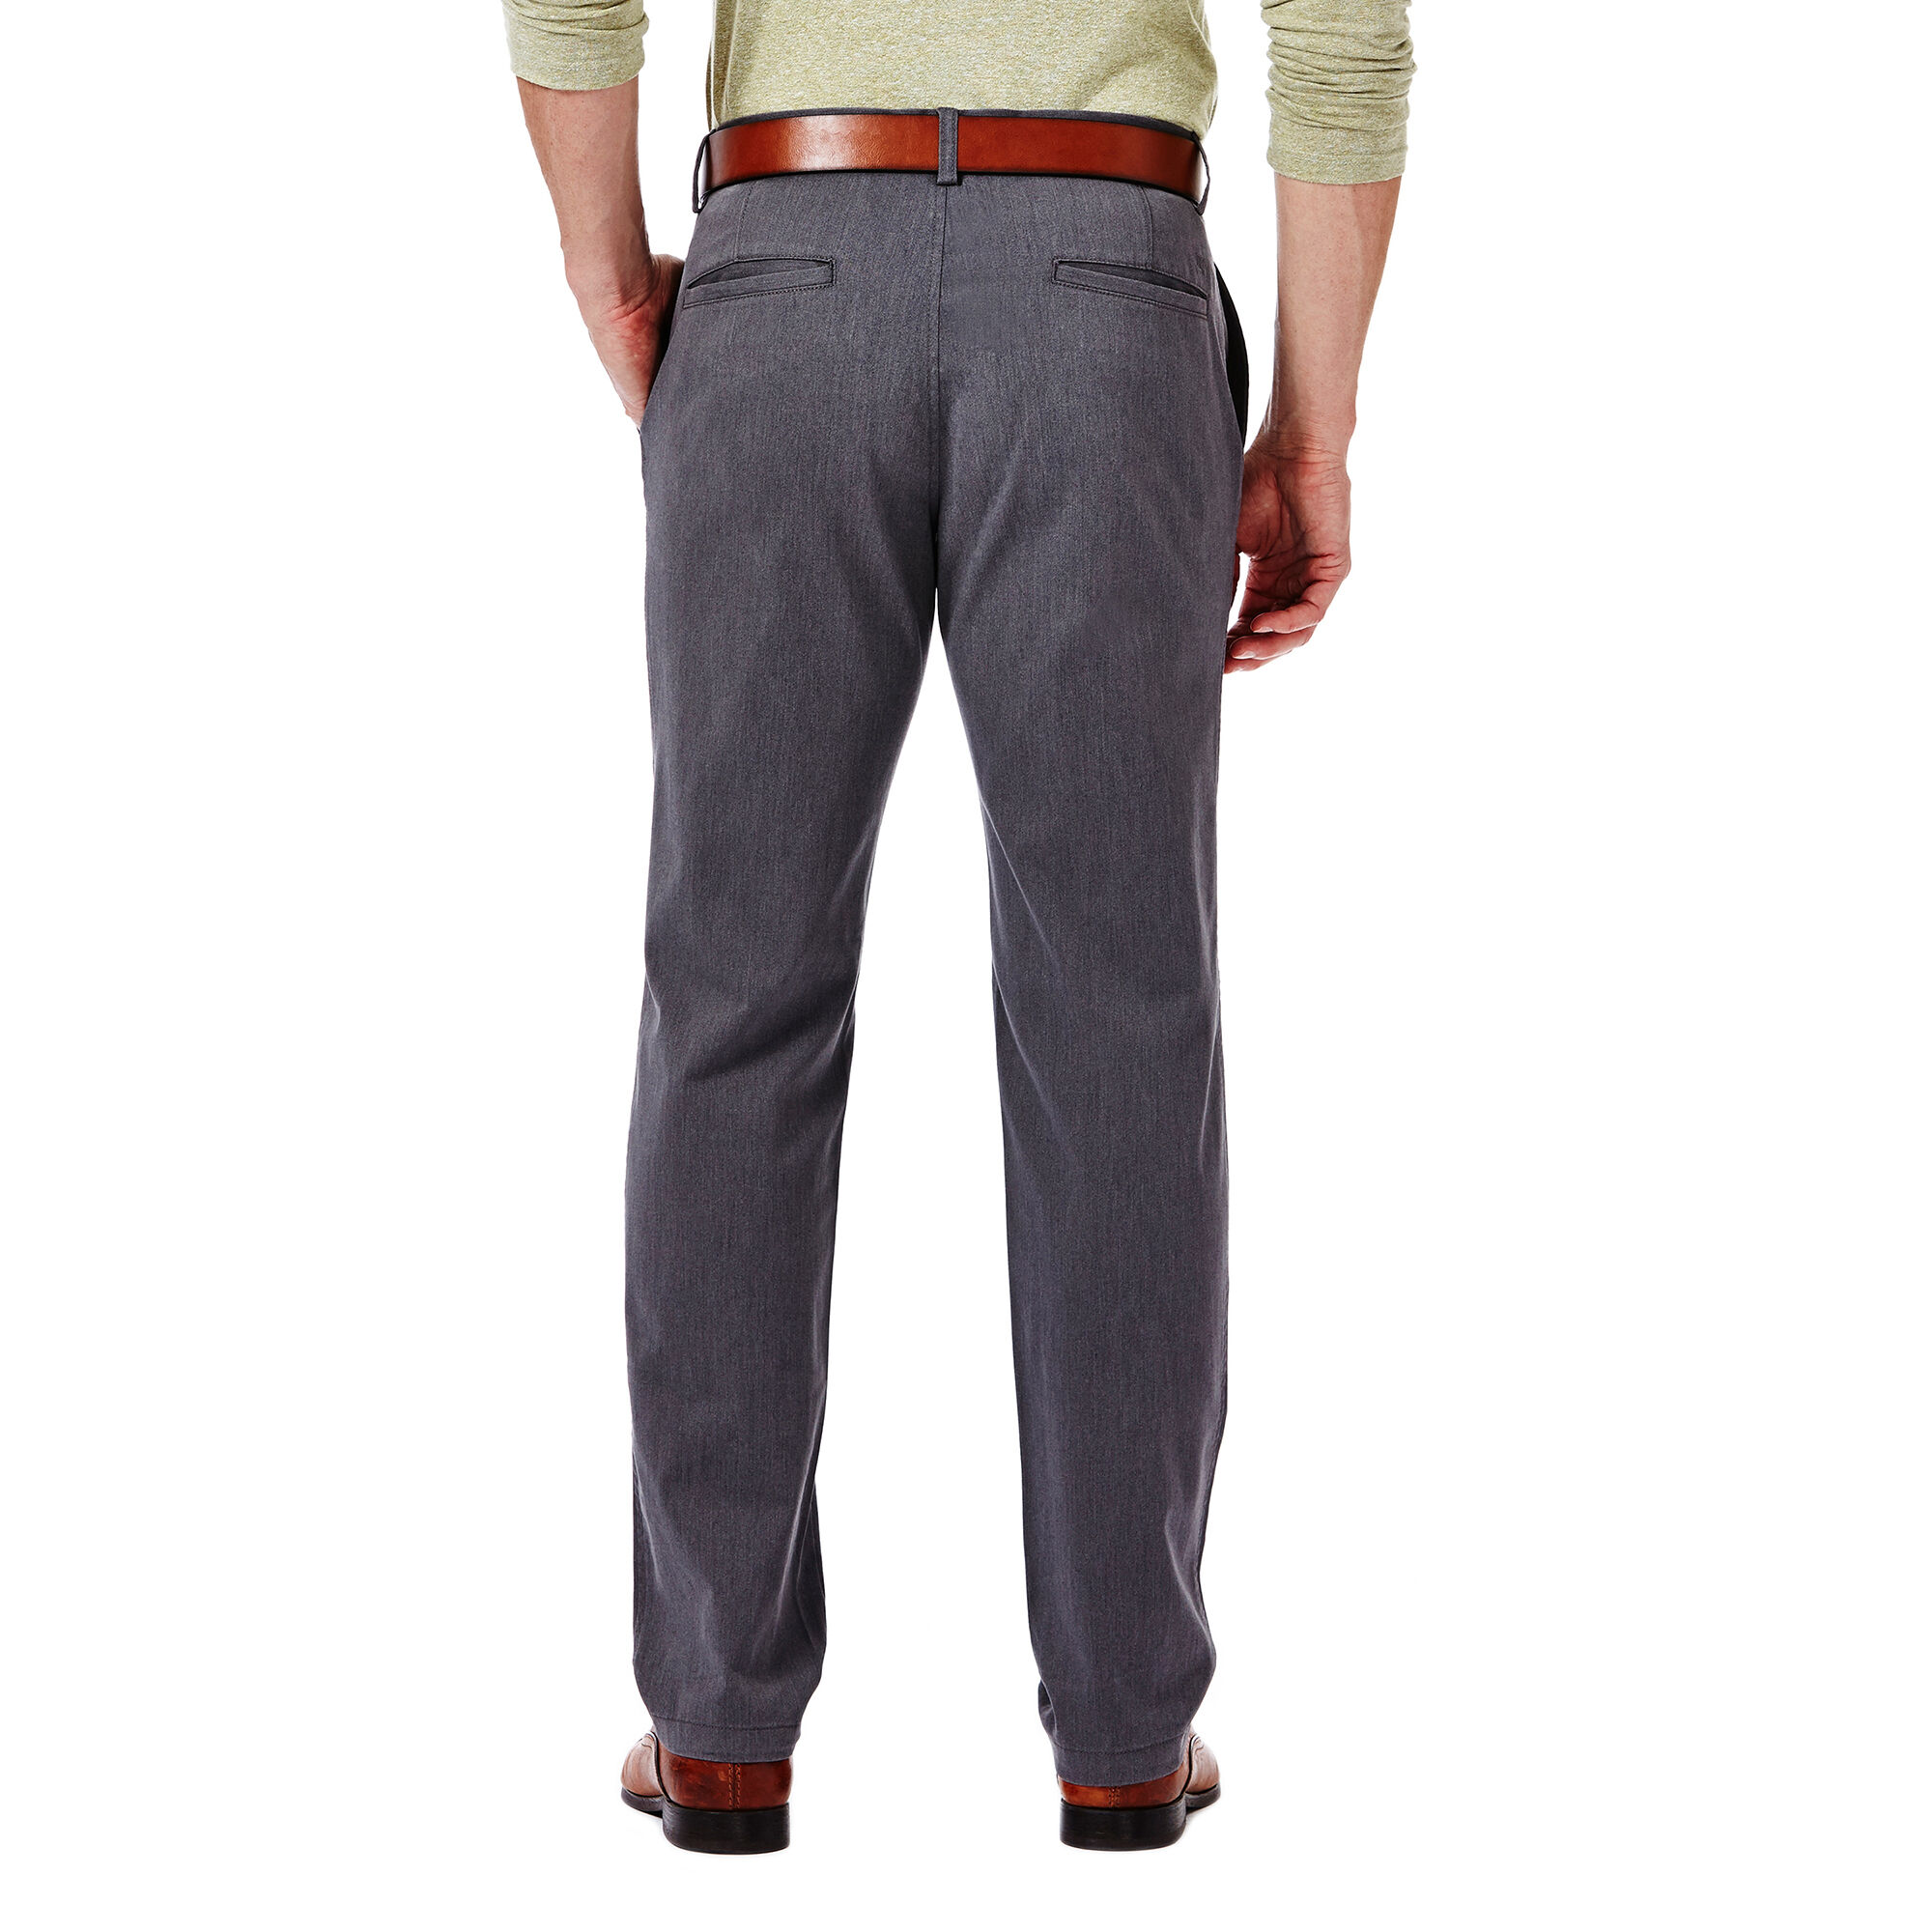 chino chat sites The everything chino is made with a structured stretch knit that has anti-odor and  moisture wicking properties this pant is beyond comfortable and structured.